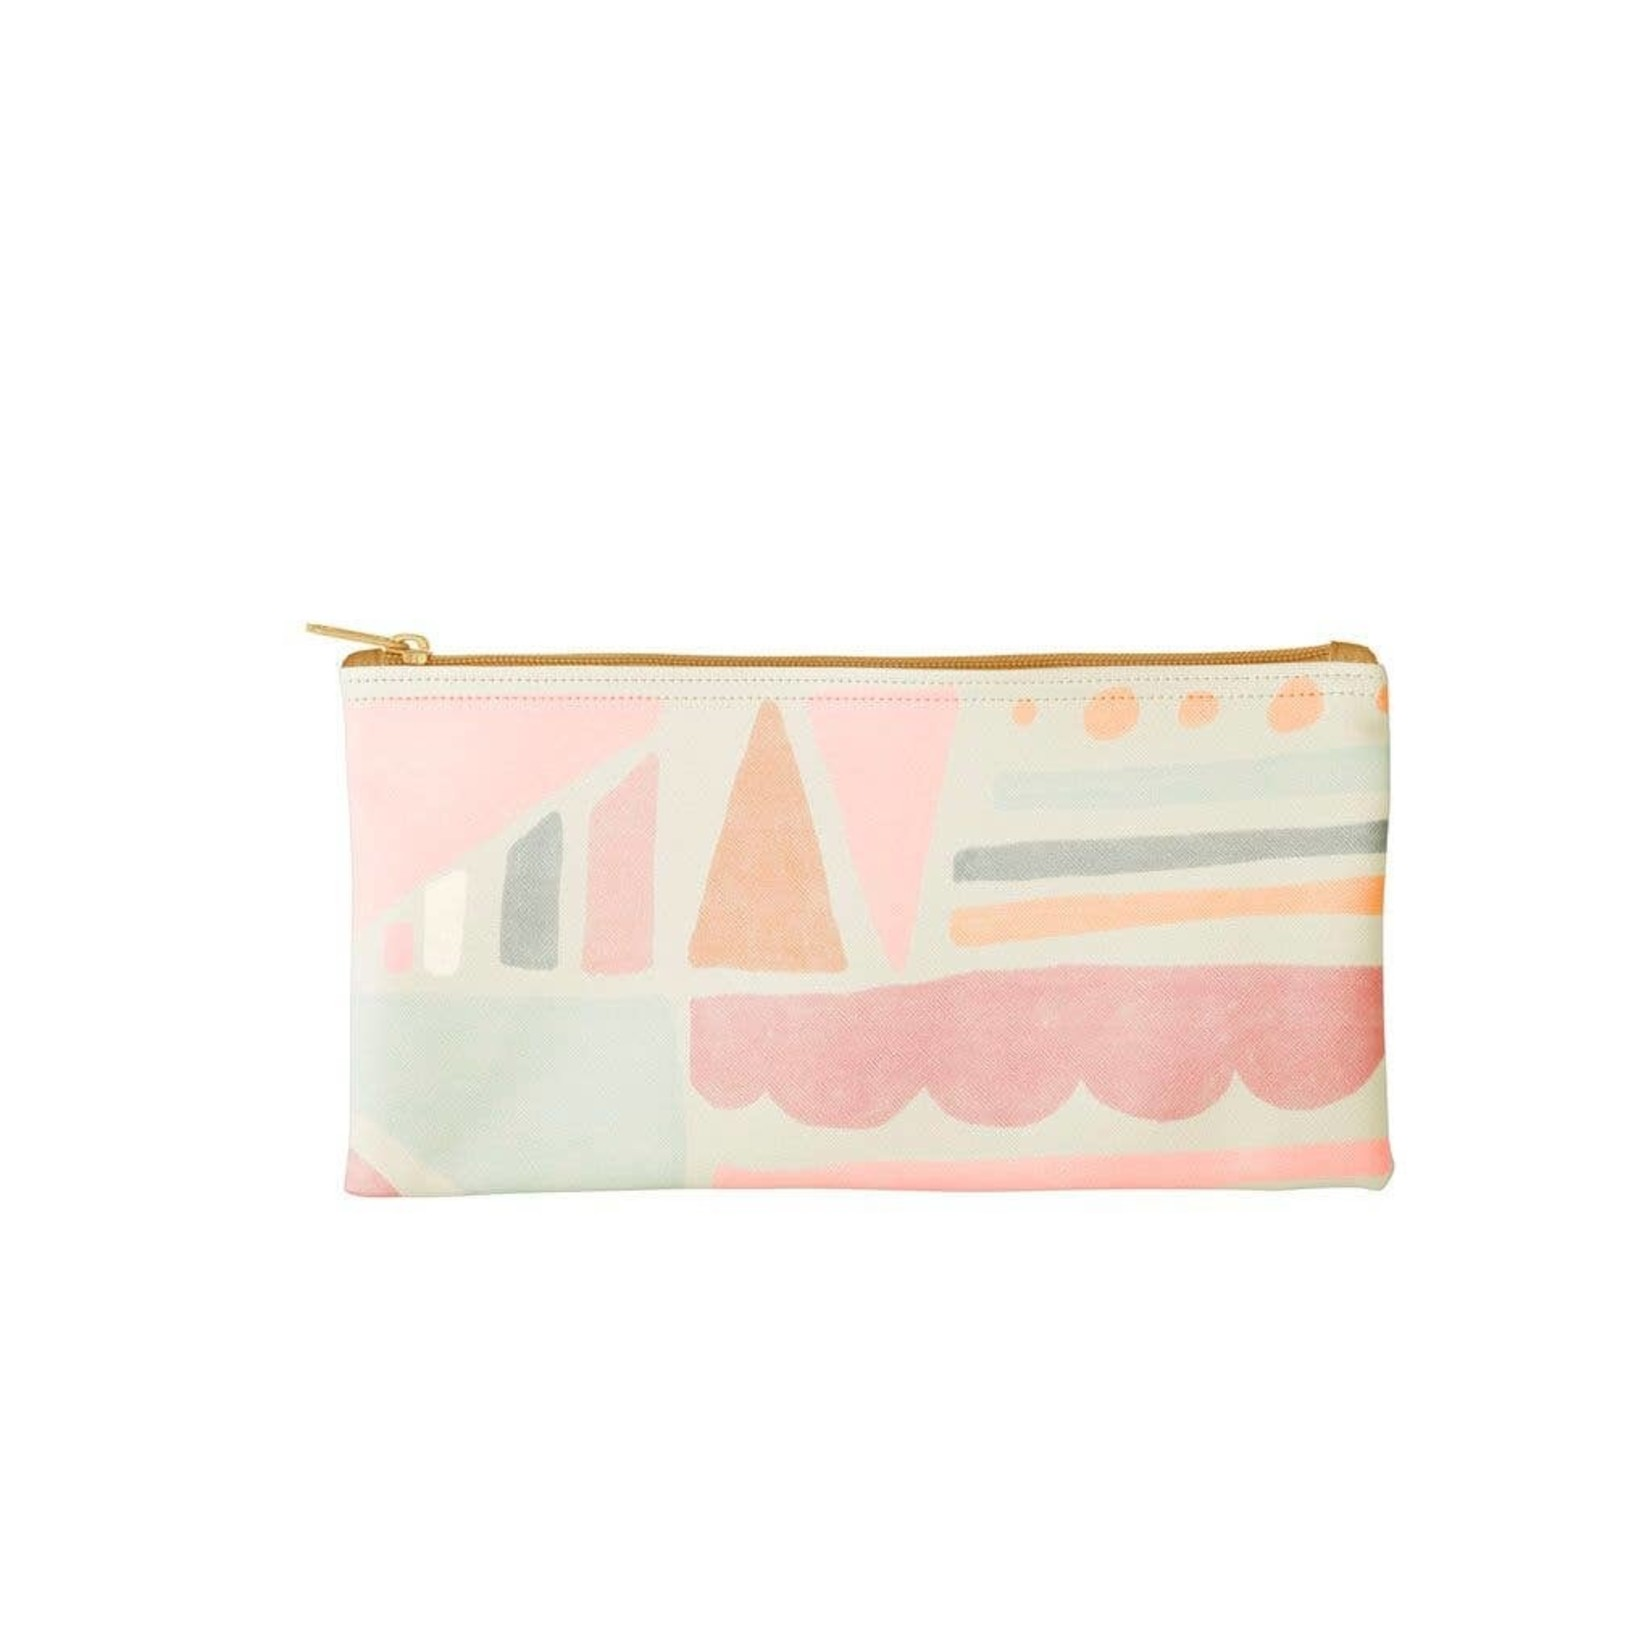 Talking Out of Turn All the Things Pouch